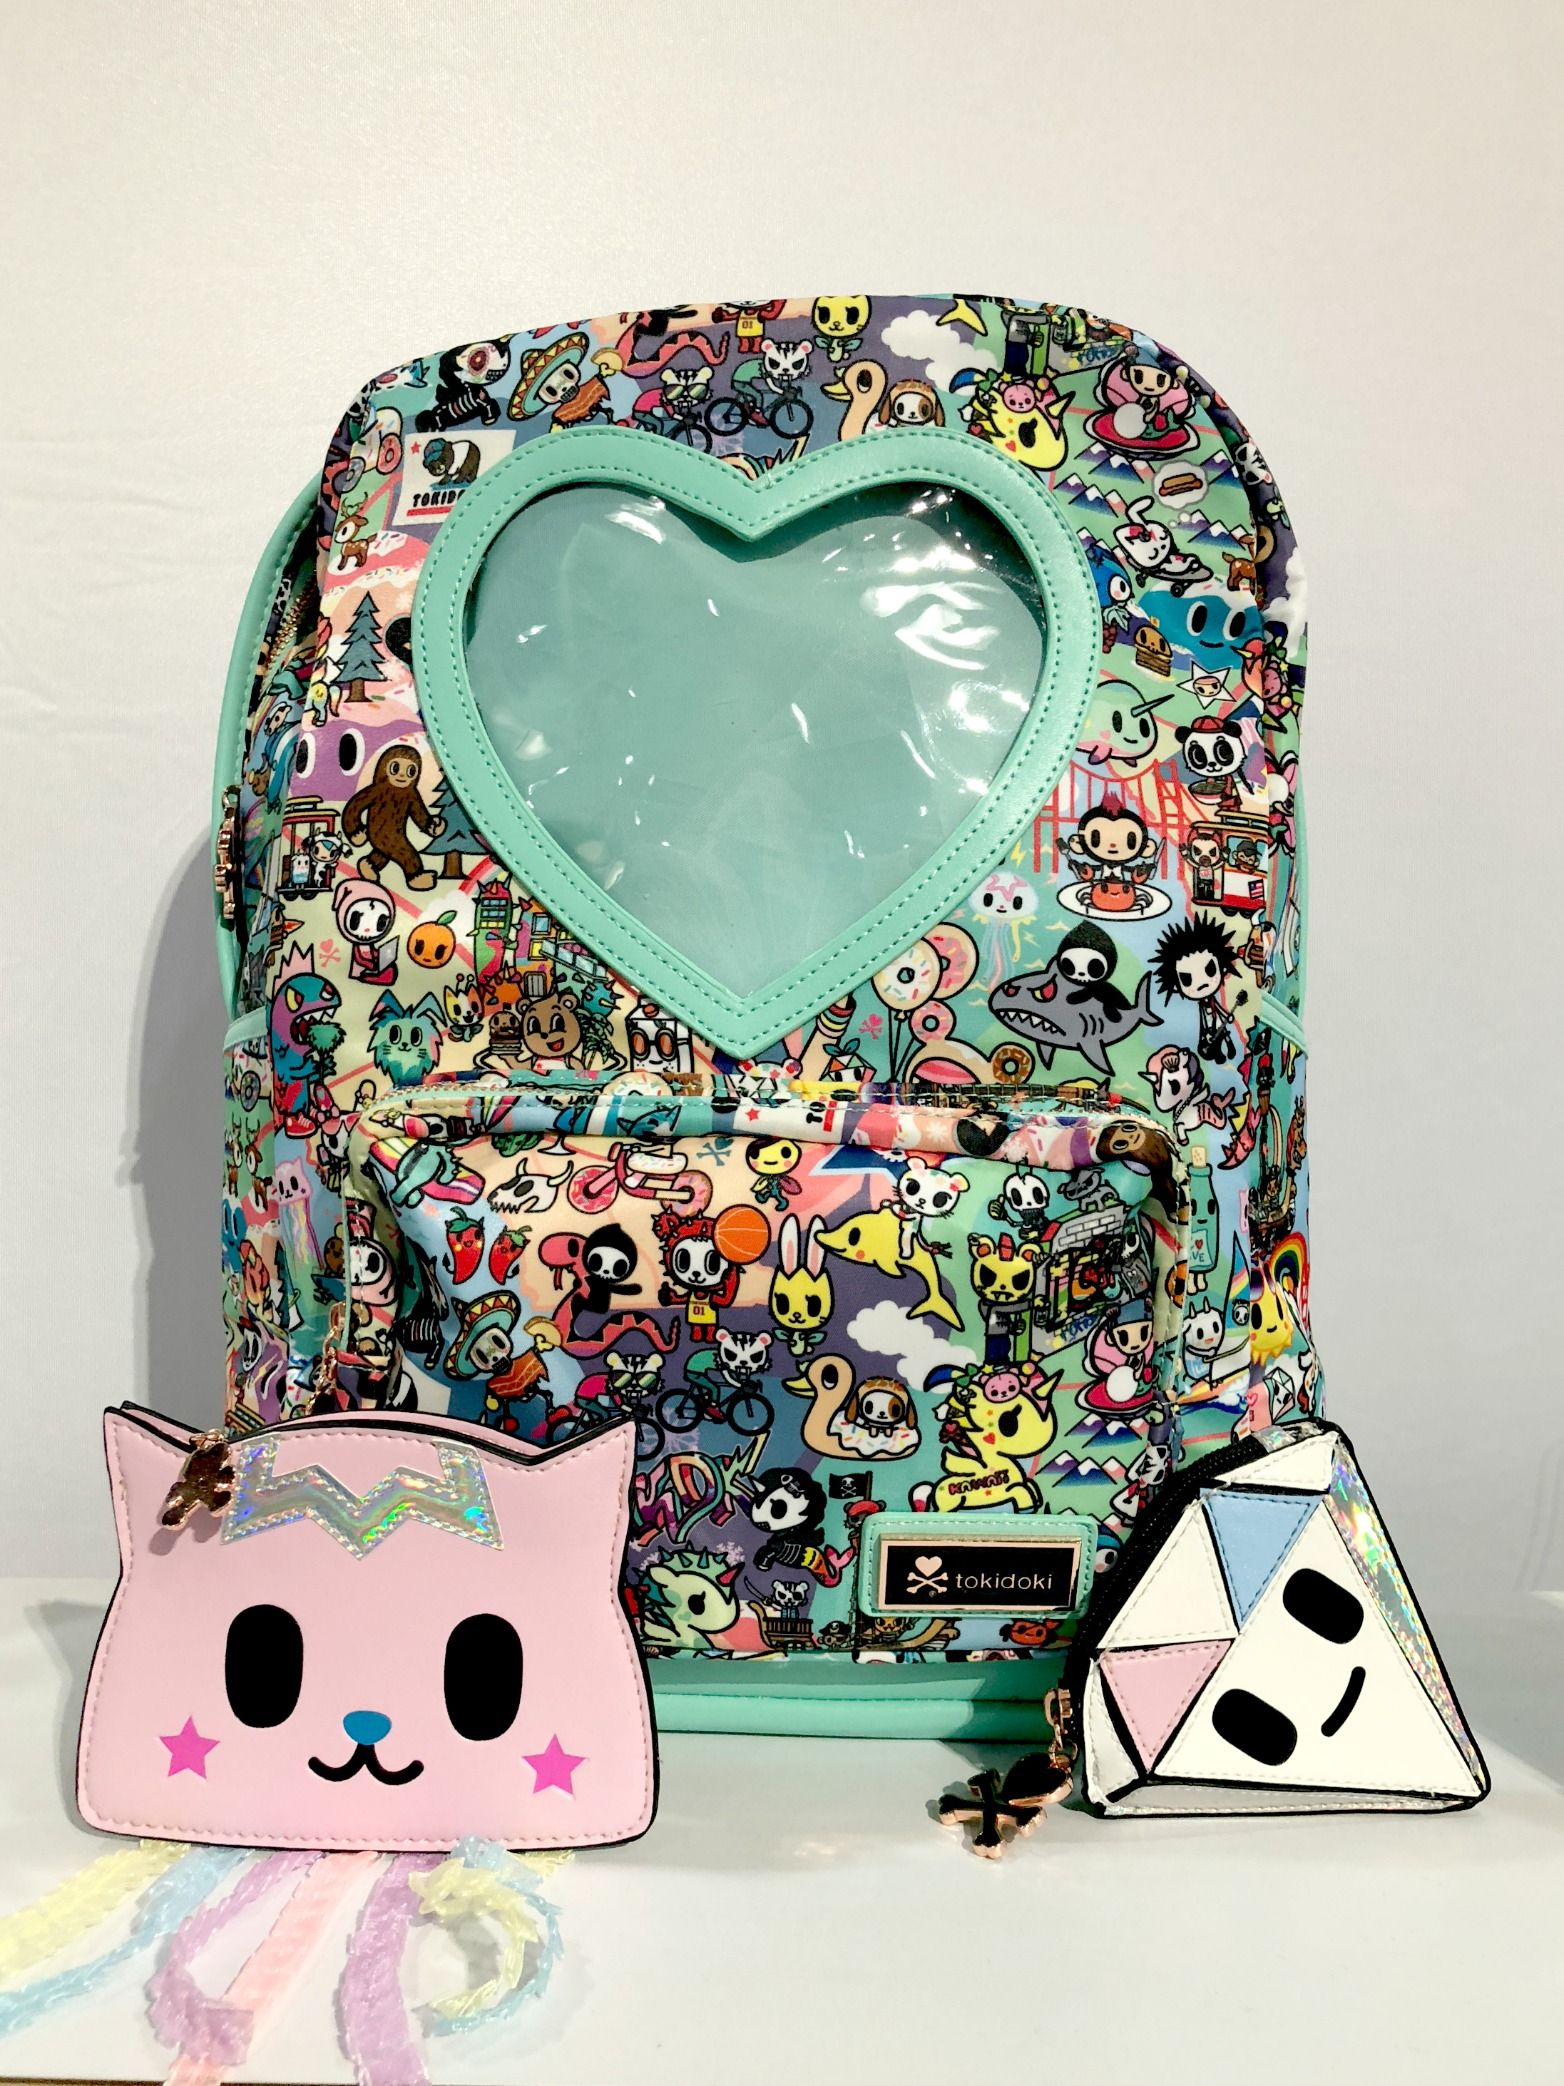 c60379325e22 ... explosion of pop culture awesomeness. New Tokidoki Heart Window Backpack  seen at Toy Fair 2018